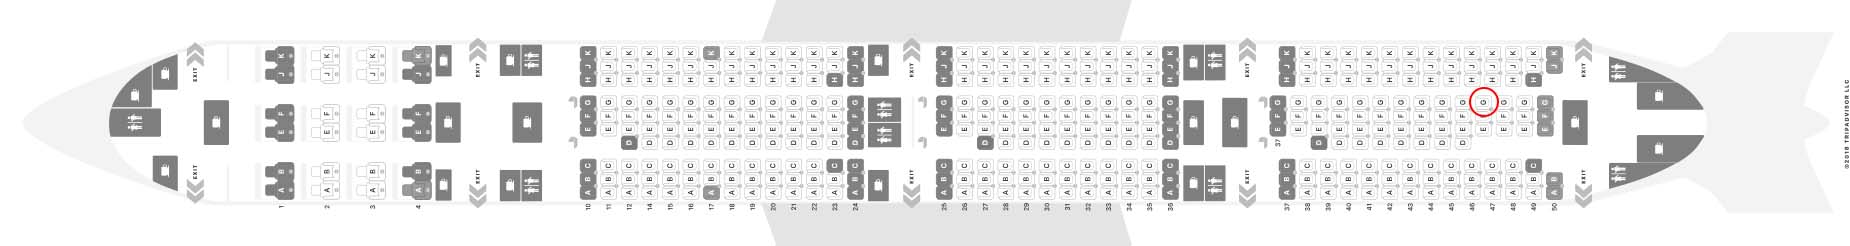 Qatar Airways 777-300er seat map